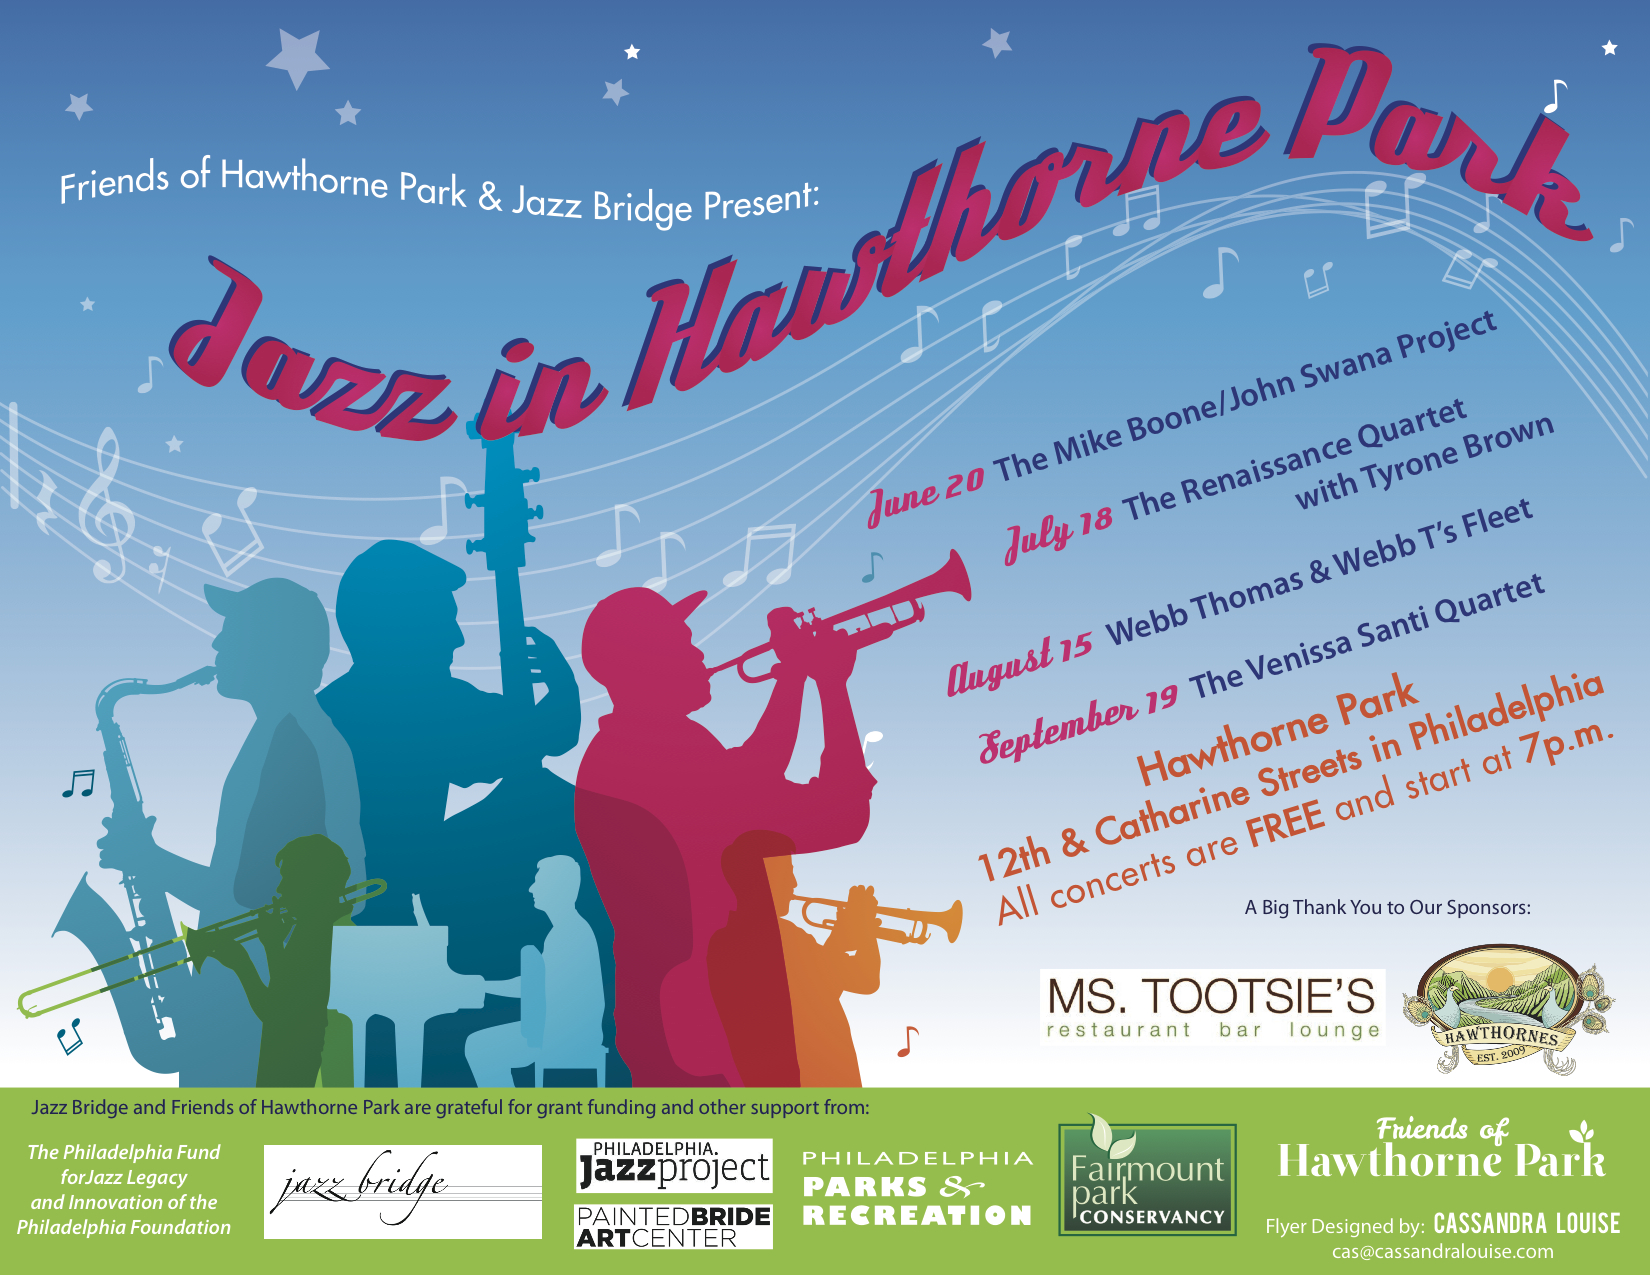 Jazz in Hawthorne Park